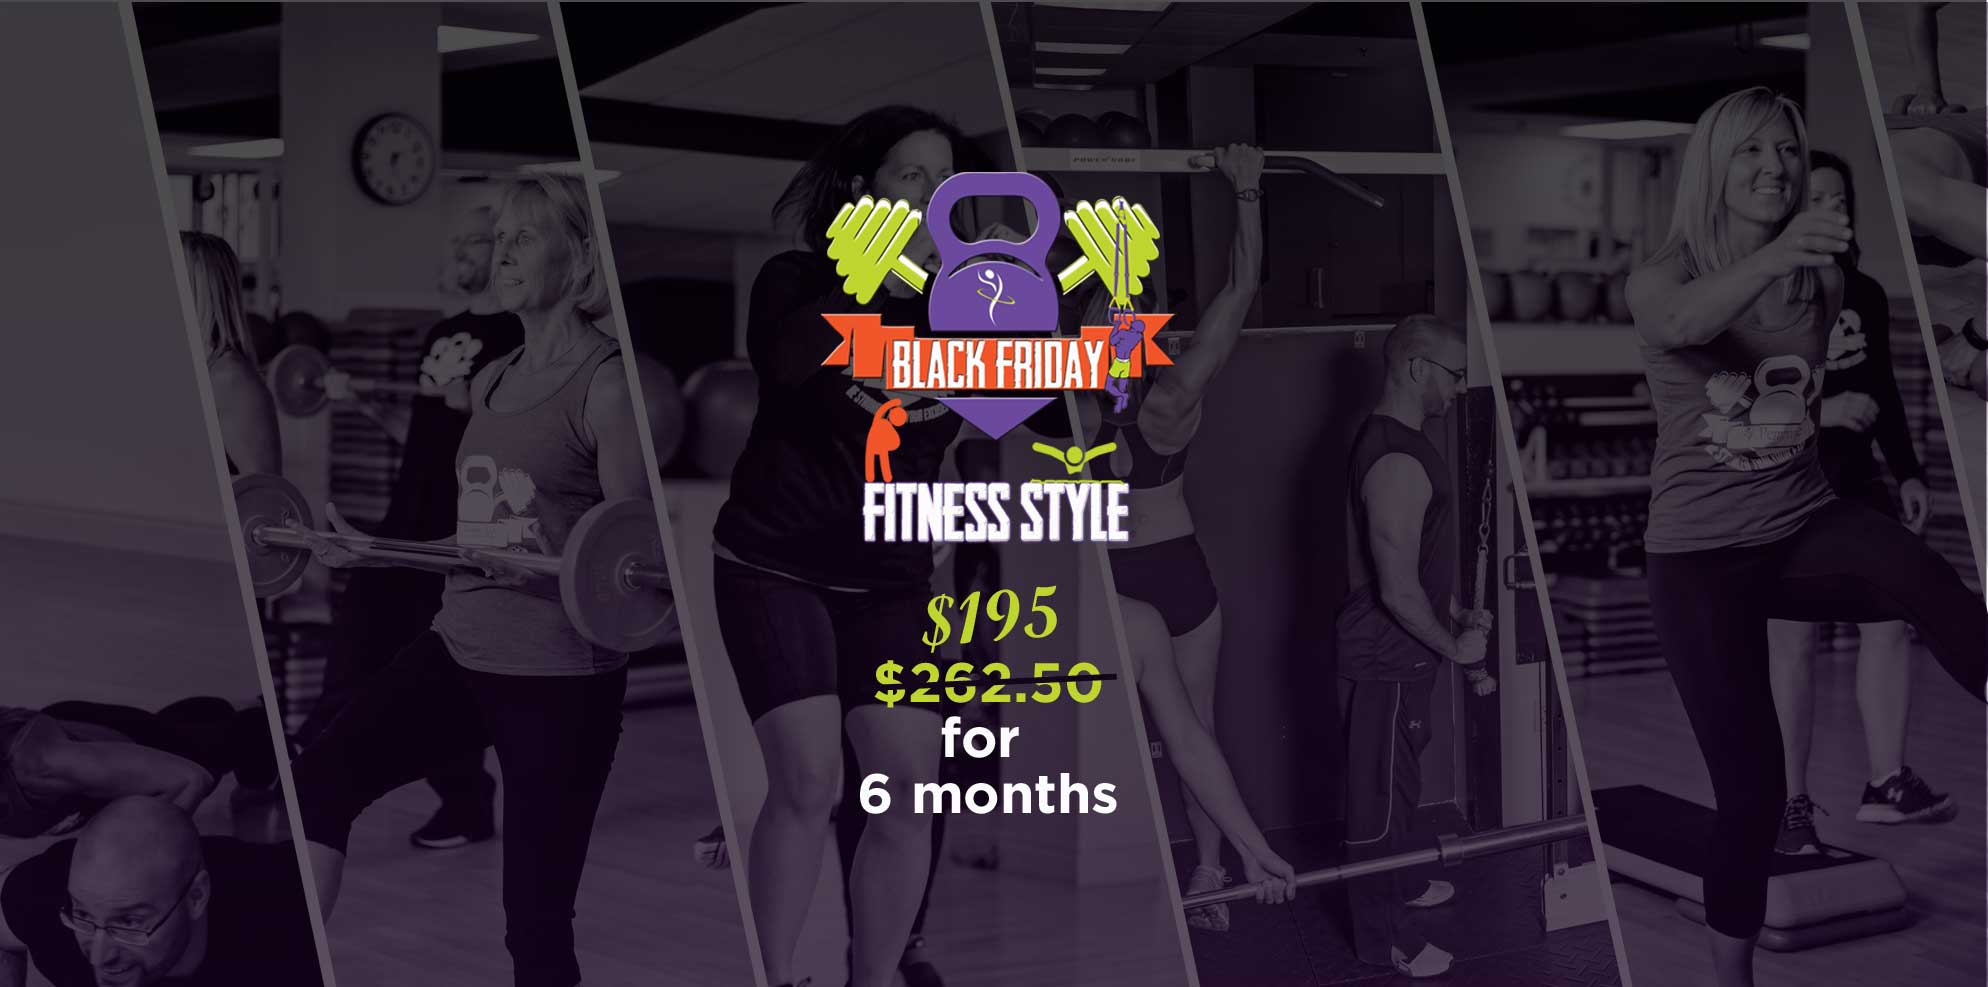 Black Friday Fitness Deal at Pembroke Fitness